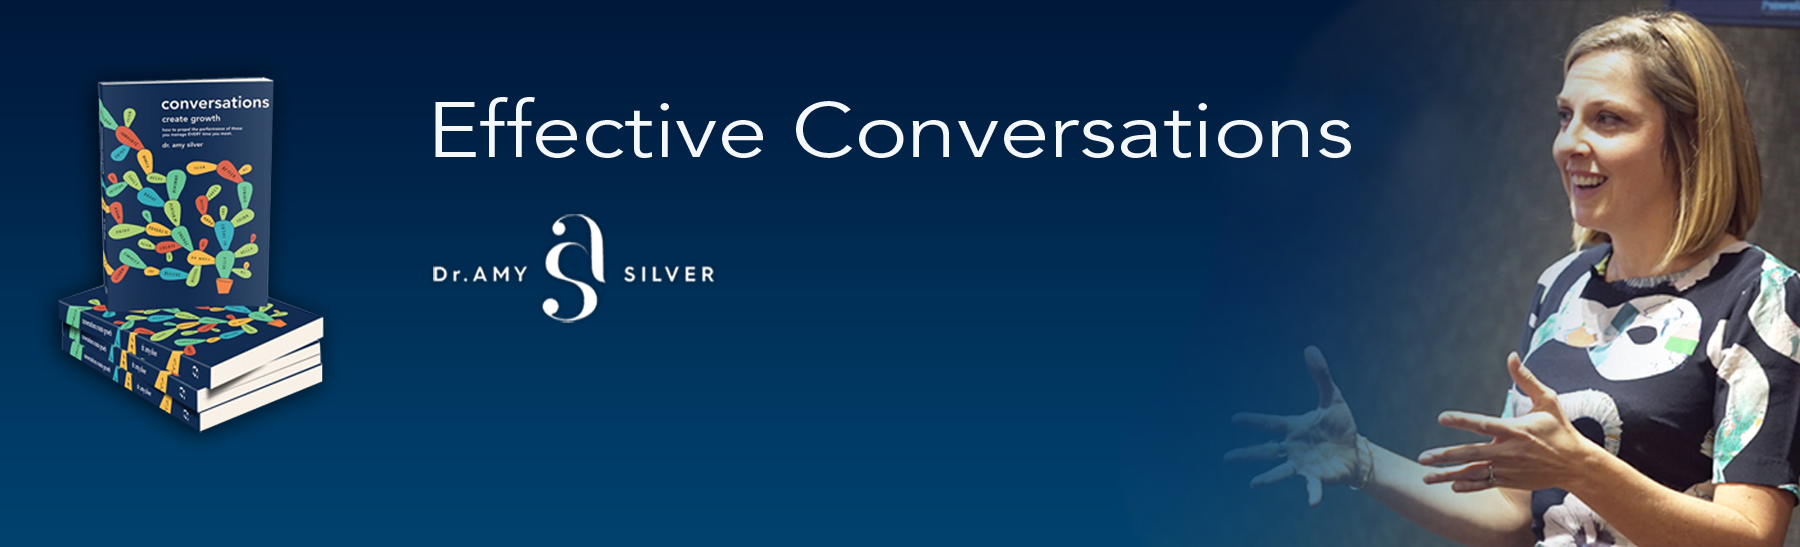 LinkedIn Cover_effective conversations (1).png